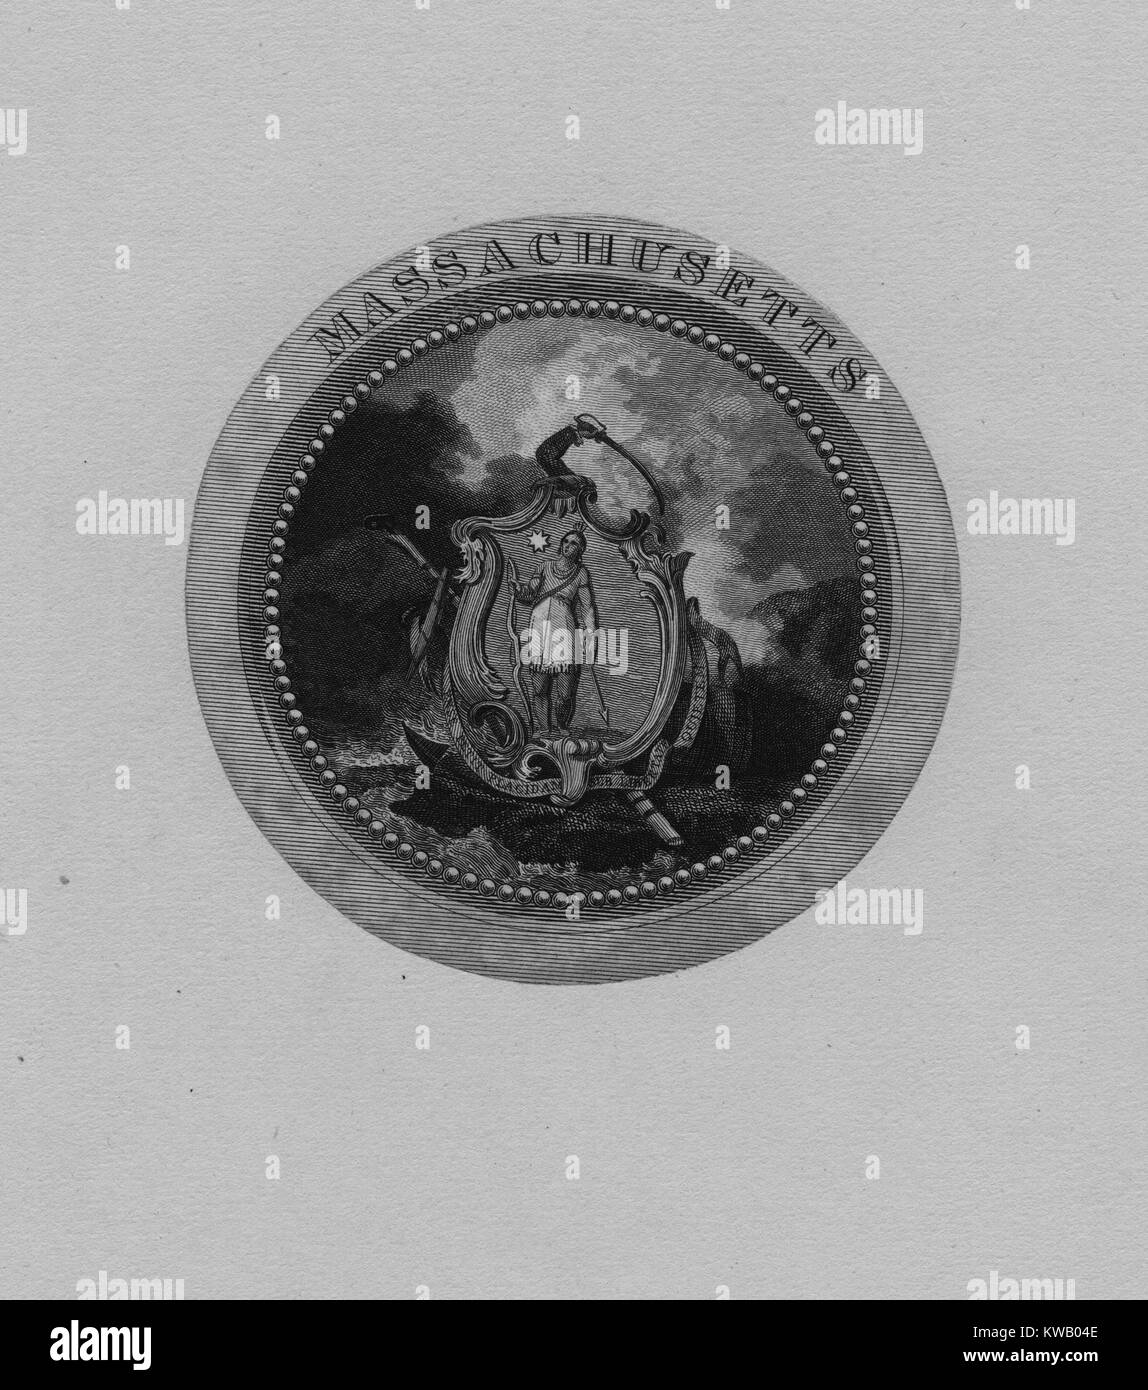 Engraving of an early version of the Seal of Massachusetts, 1850. From the New York Public Library. - Stock Image